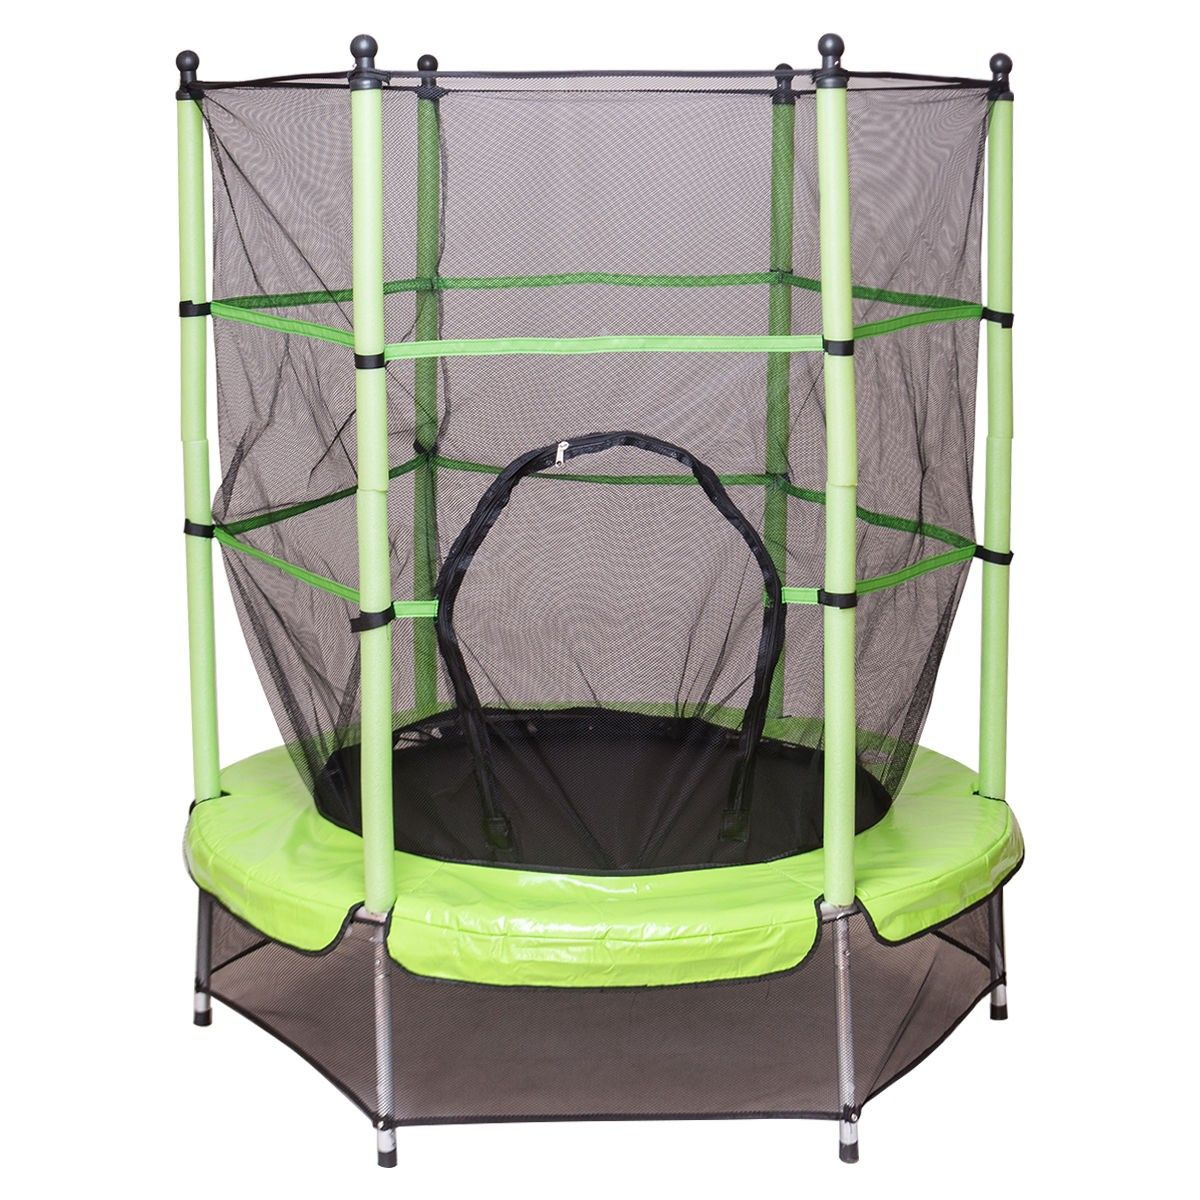 55 round exercise jumping trampoline with safety pad